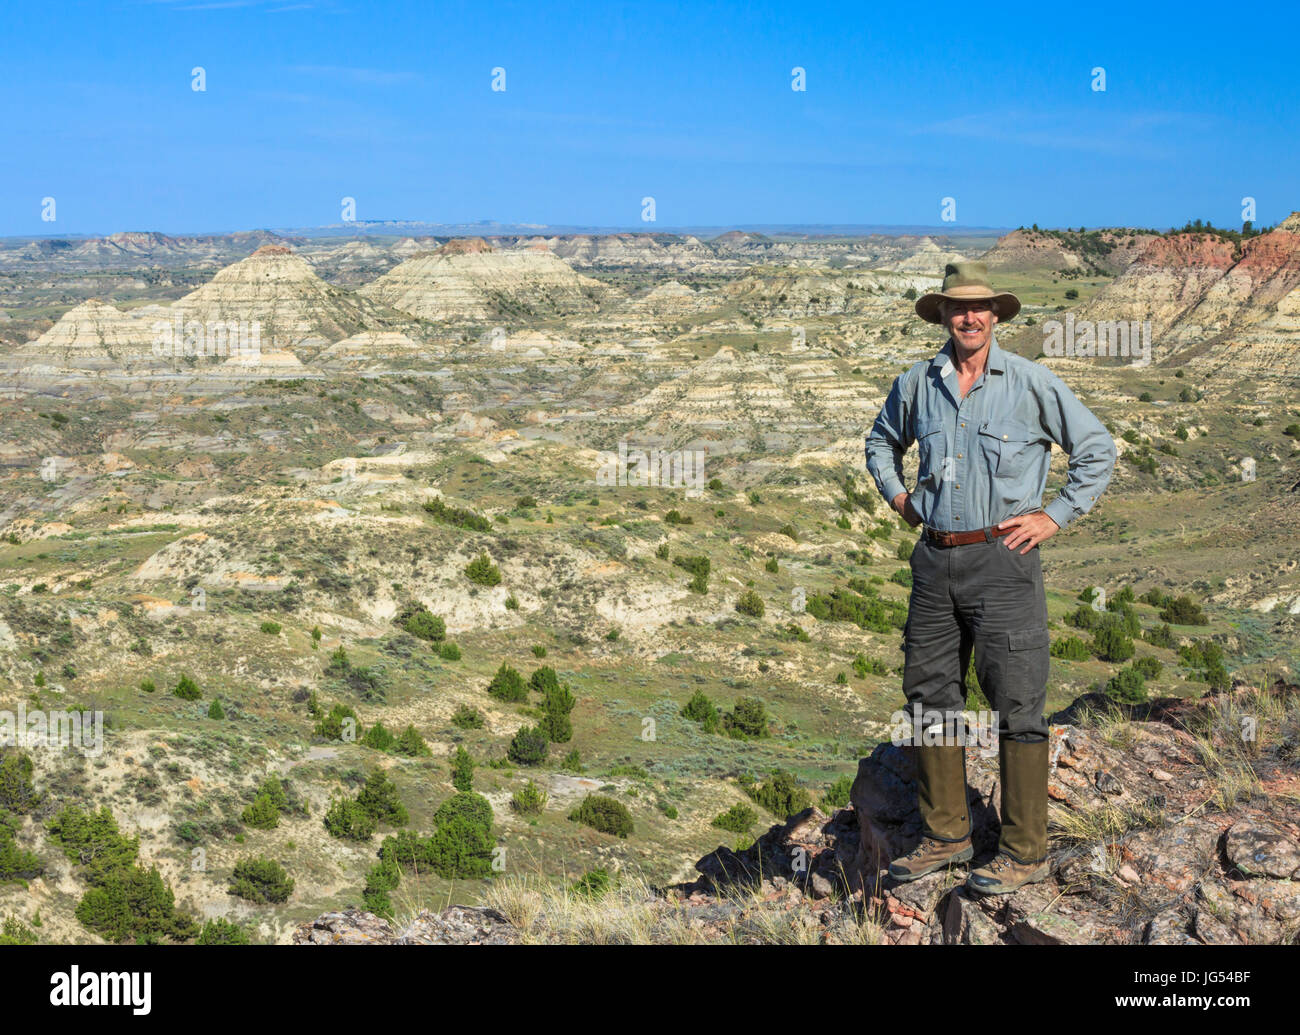 self portrait of john lambing above the terry badlands near terry, montana - Stock Image